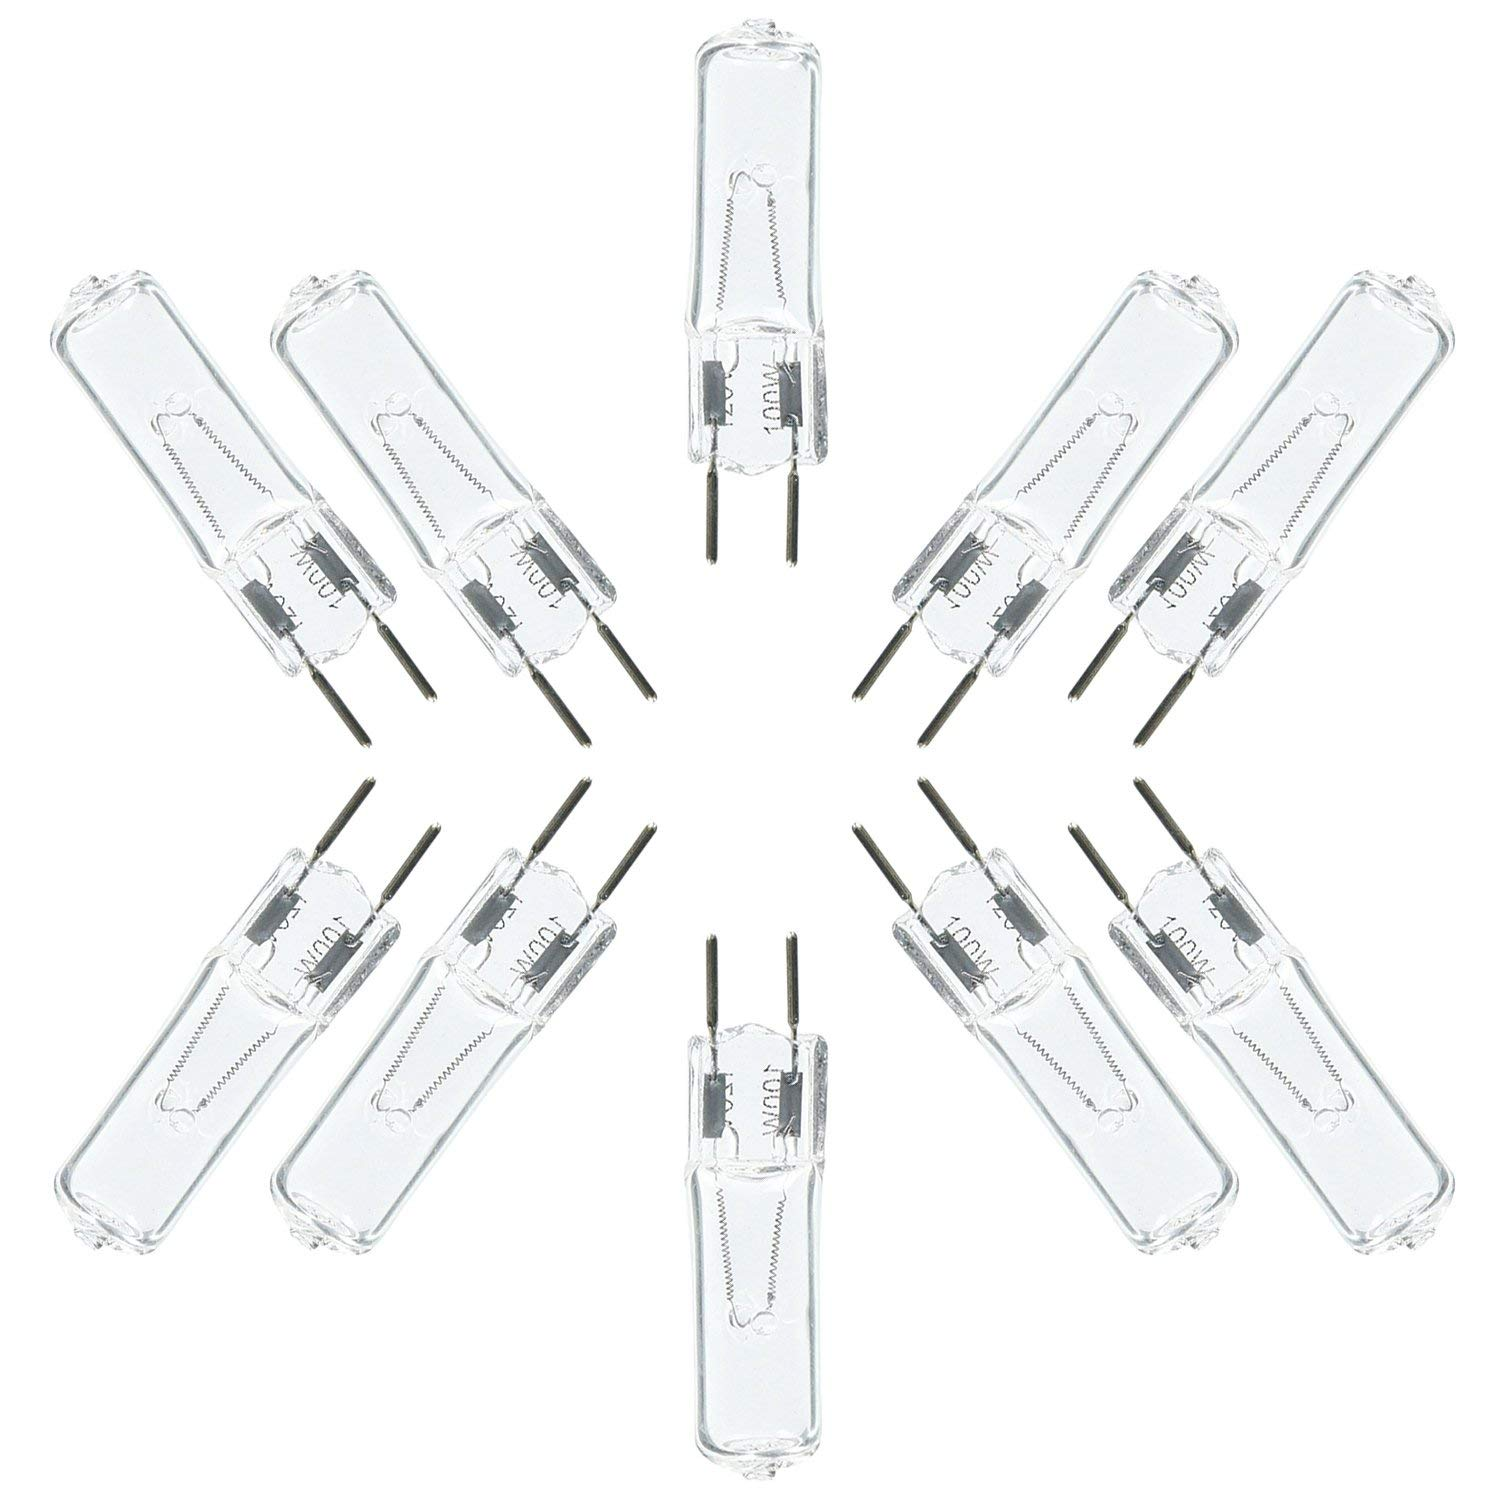 eTopLighting (10 Pack) G8 Halogen Bulb, 100 Watt Halogen G8 Bi-Pin Base, JCD Type Light Bulb 120 Volts, G8-120V-100W(10)